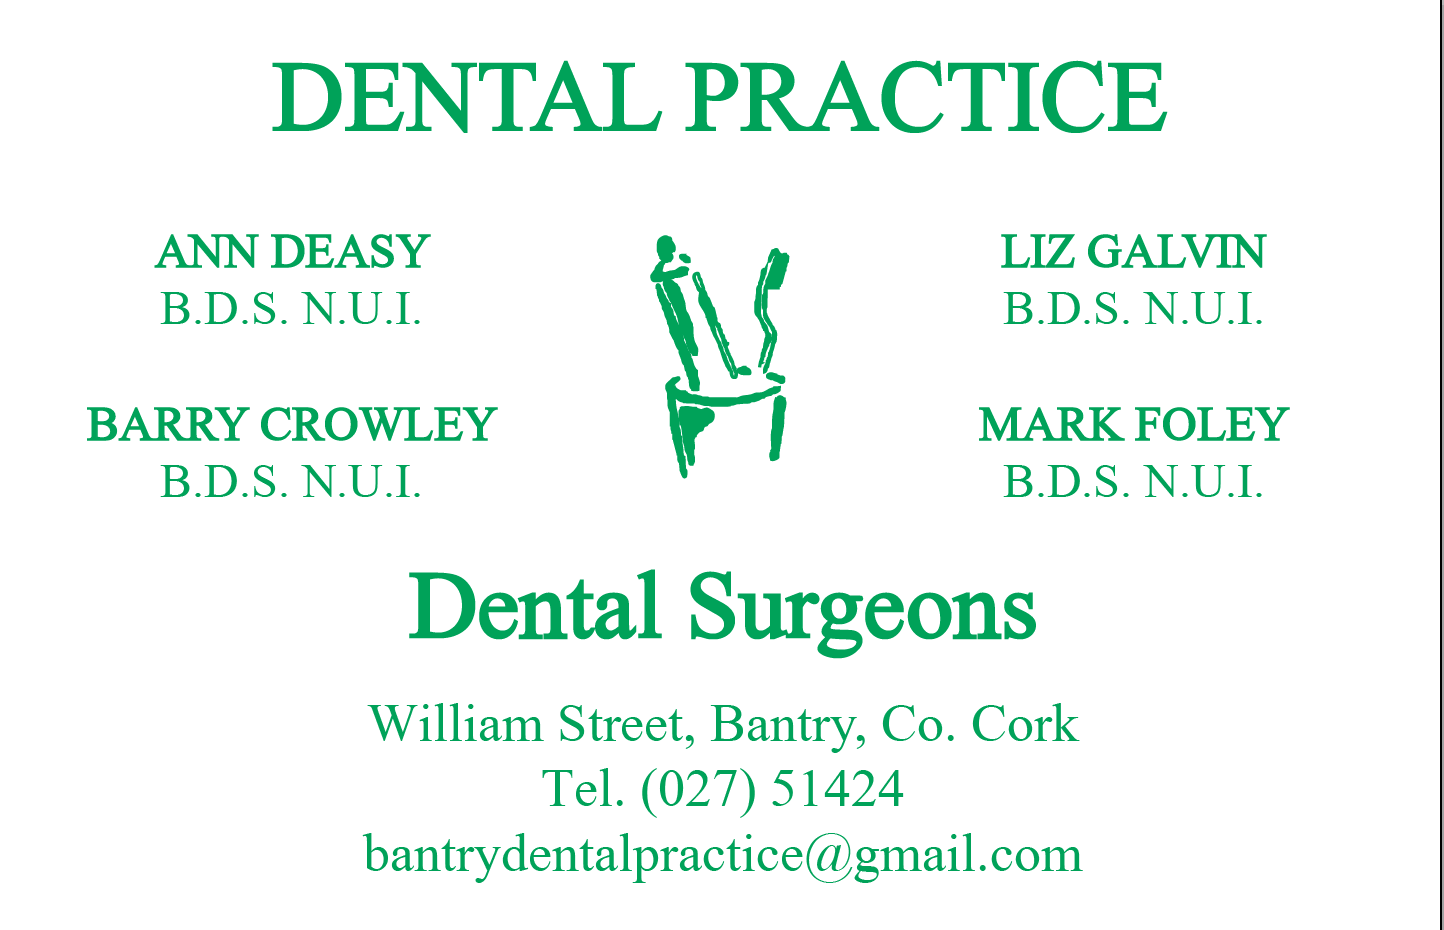 William Street Dental